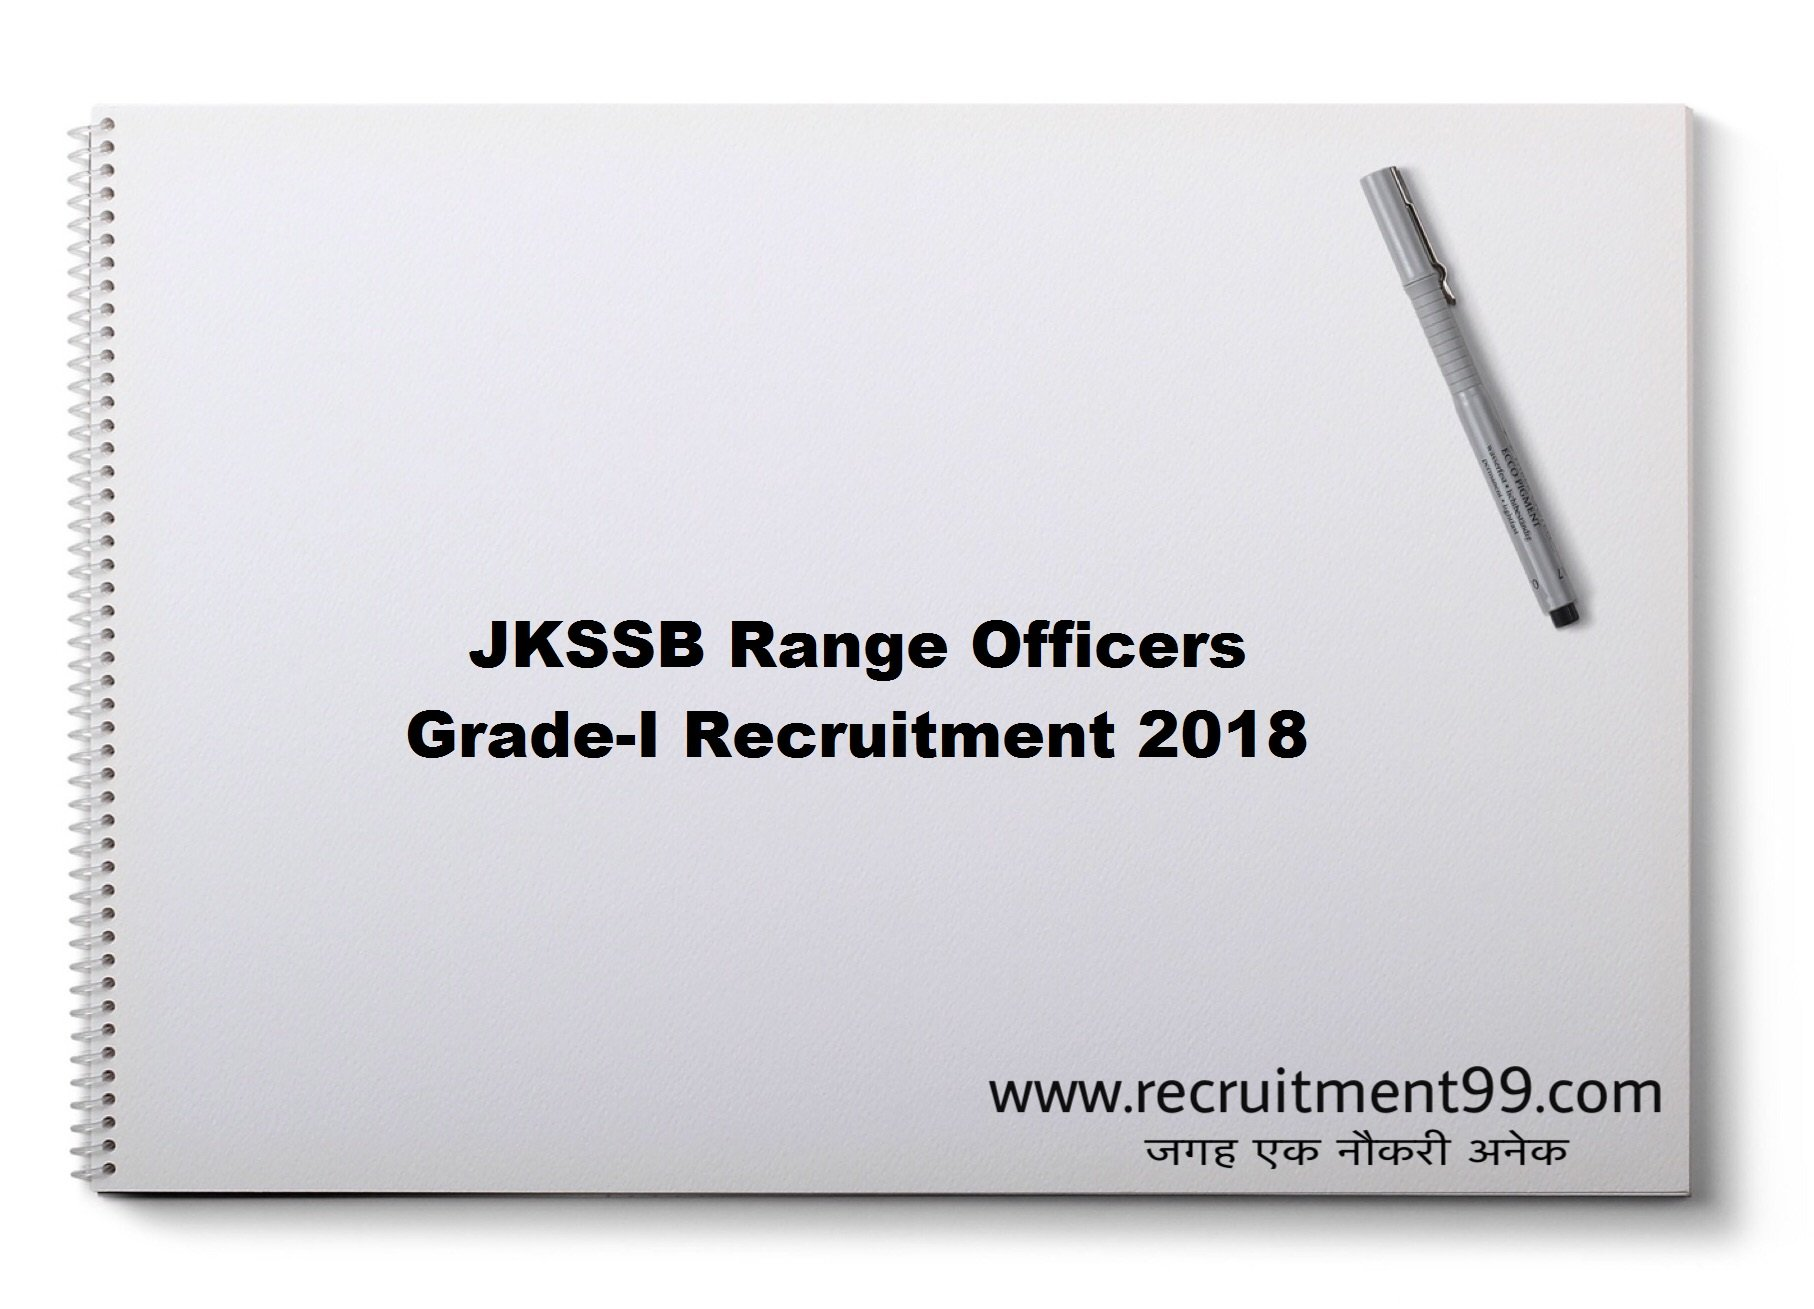 JKSSB Range Officers Grade-I Recruitment Admit Card Result 2018